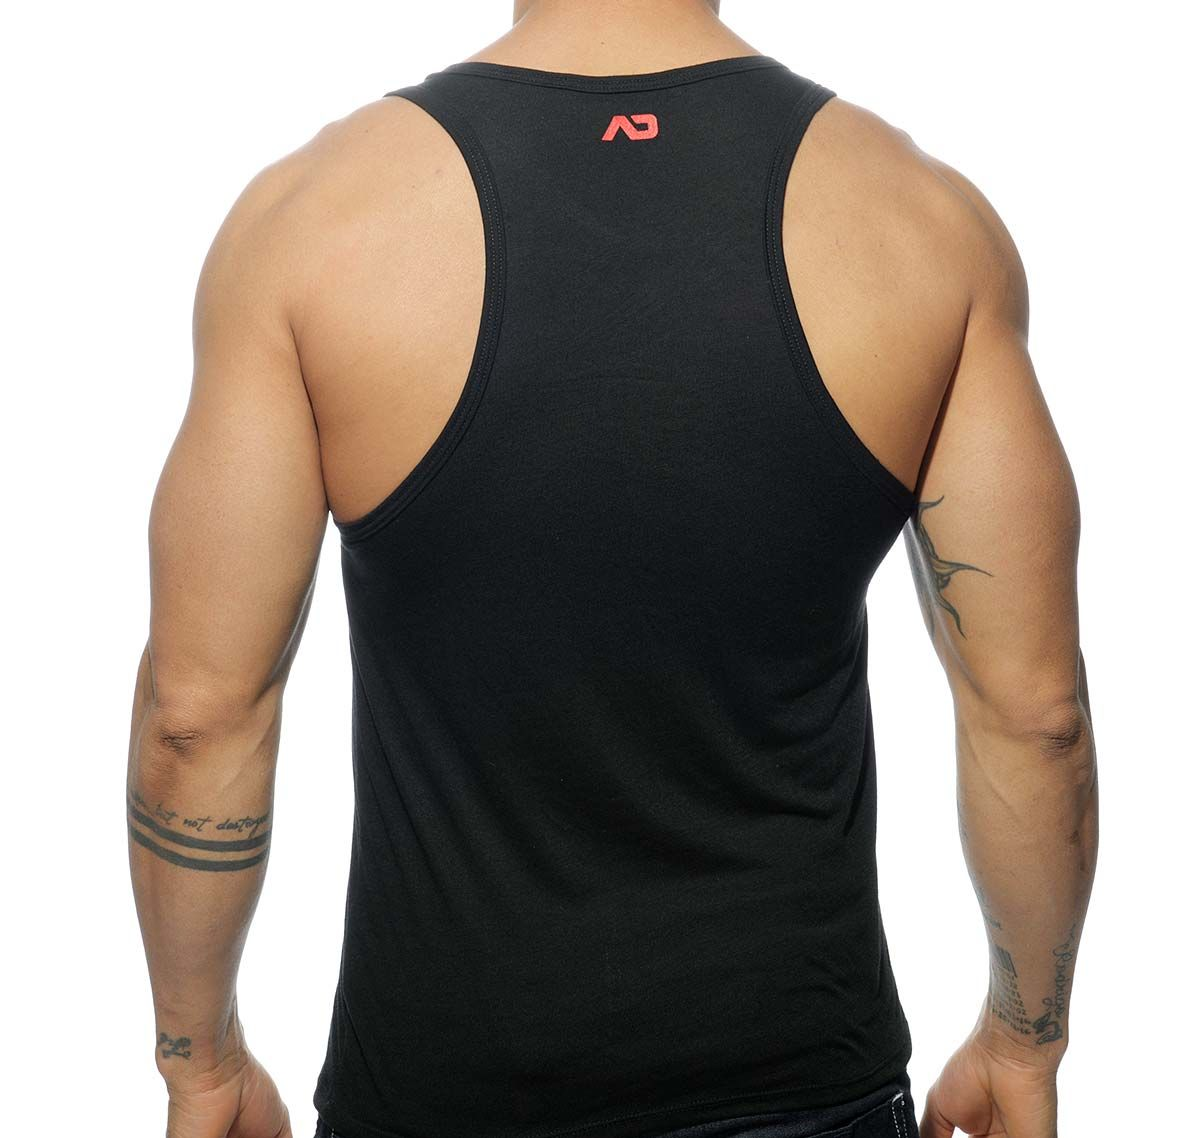 Addicted BEAR AREA TANK TOP AD572, schwarz